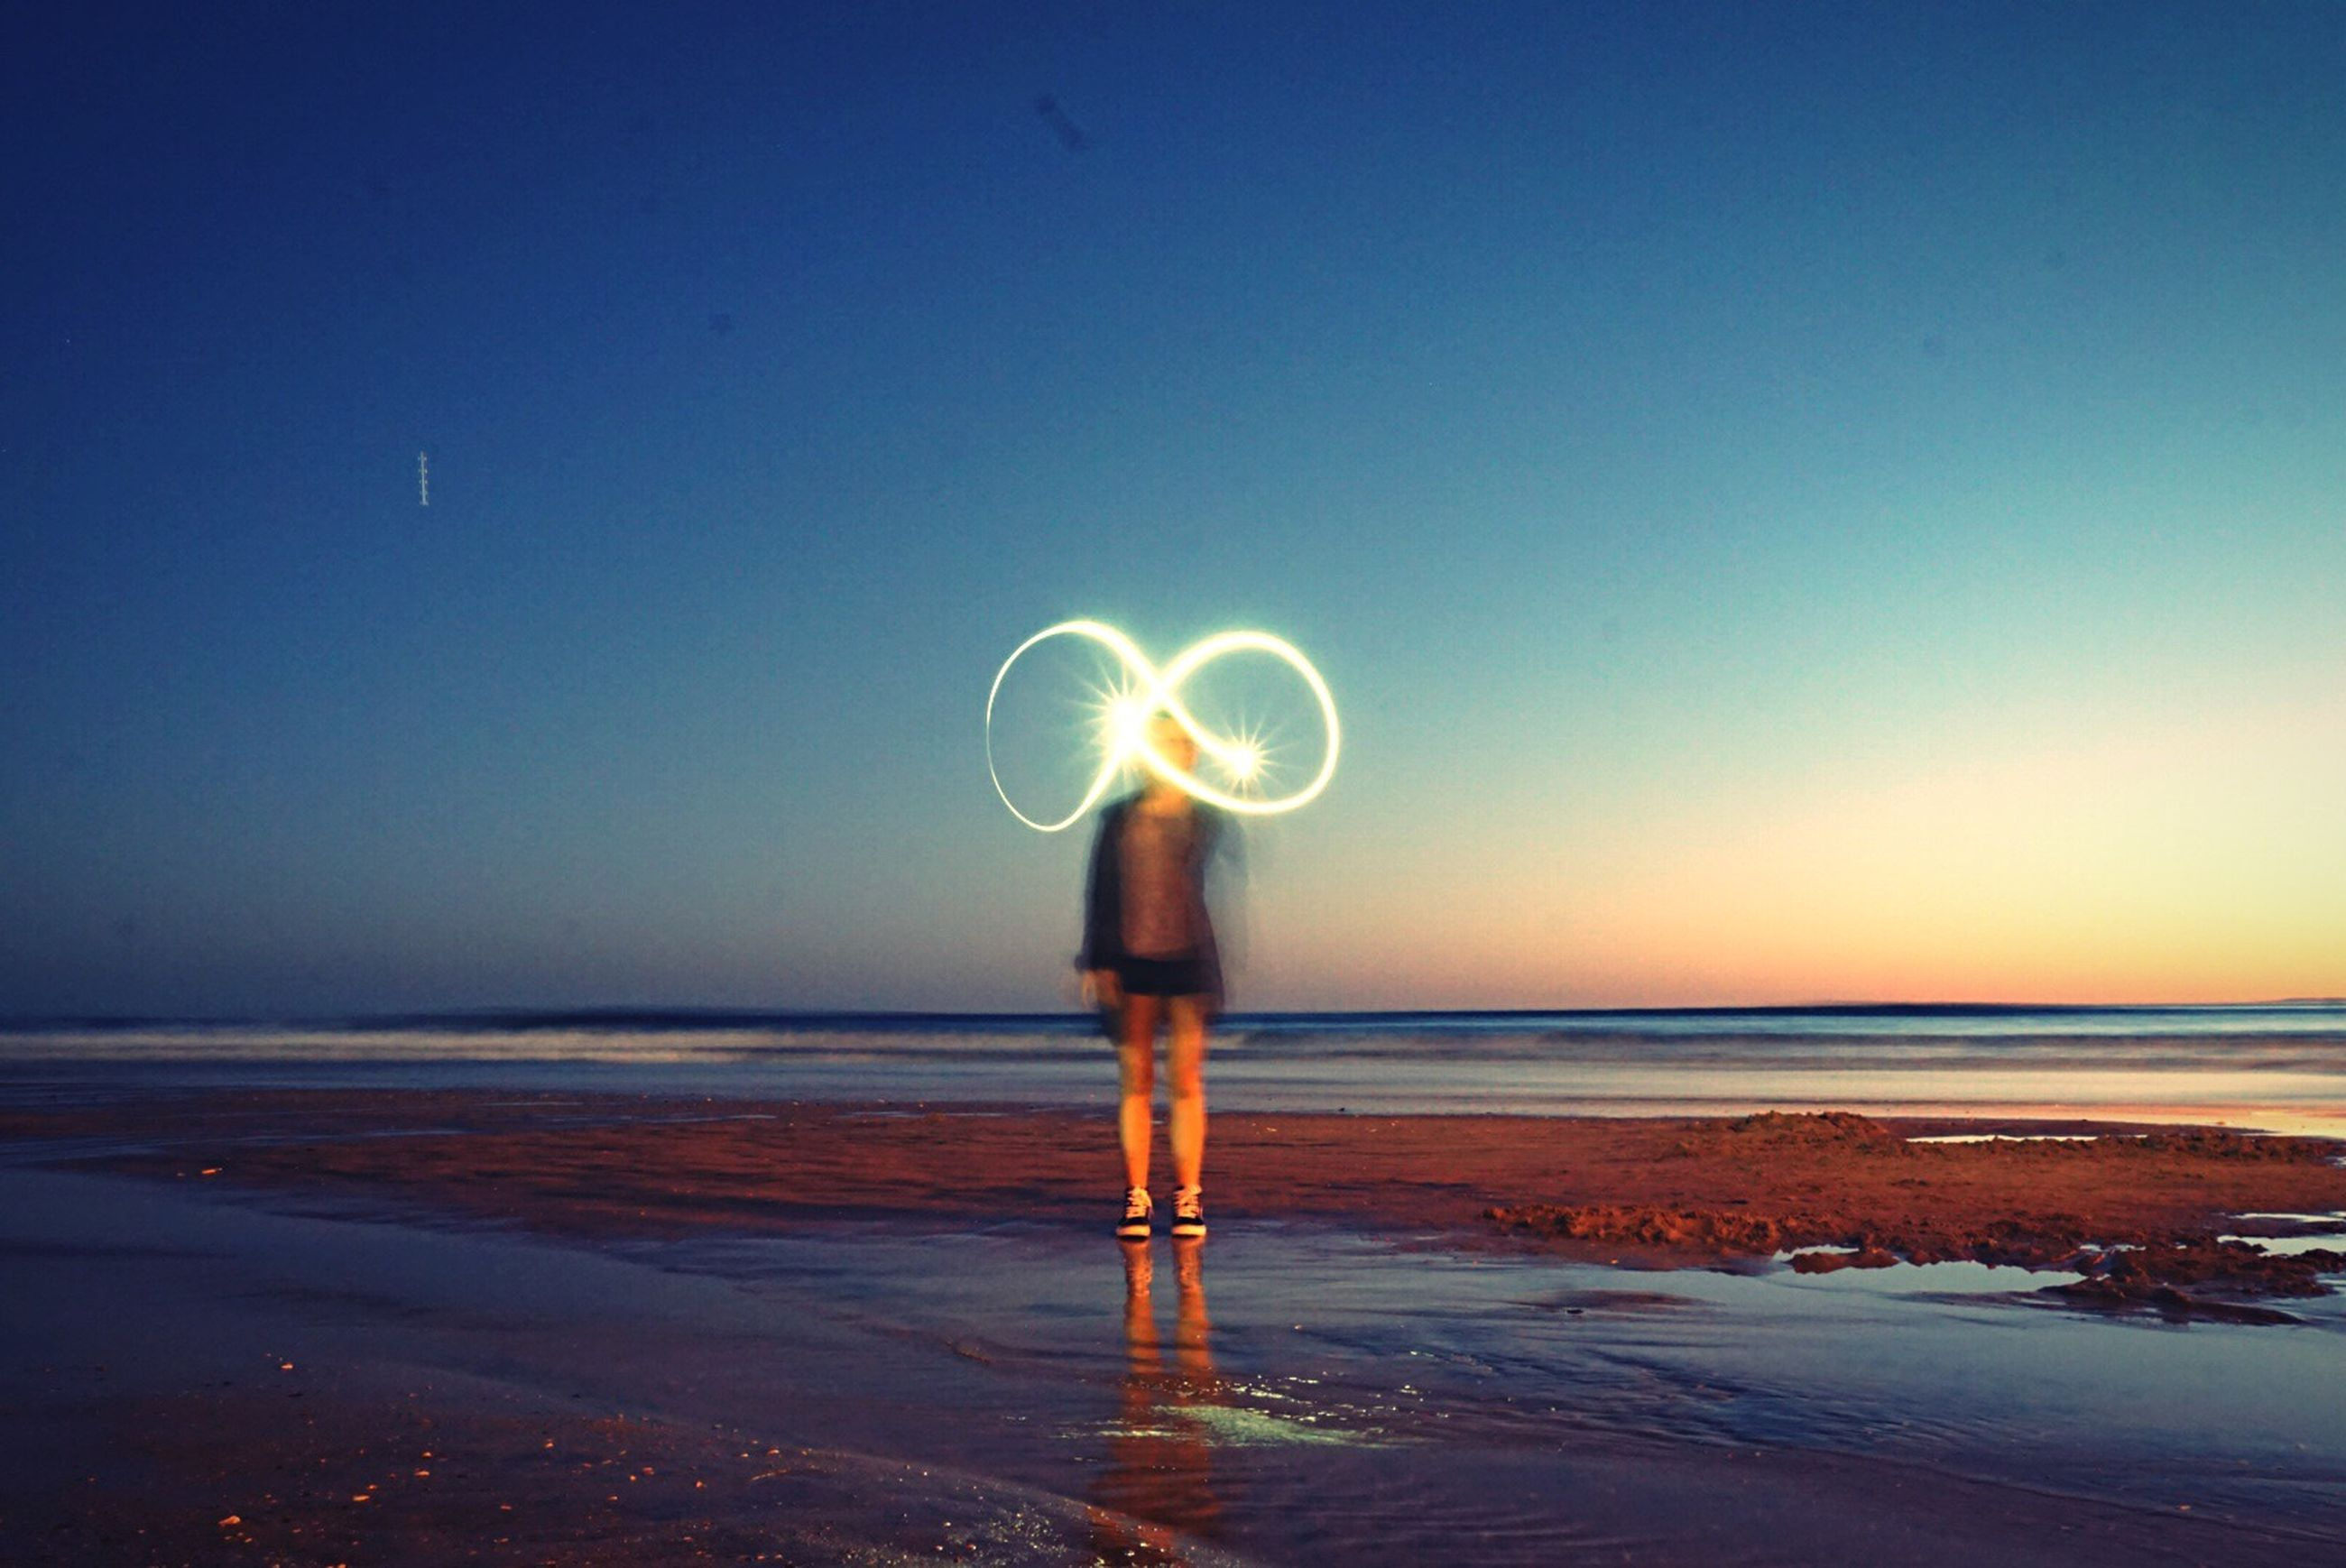 beach, illuminated, full length, water, pole, men, horizon over water, standing, clear sky, night, shore, street, coin-operated binoculars, tranquil scene, scenics, sea, carefree, outdoors, tranquility, blue, person, nature